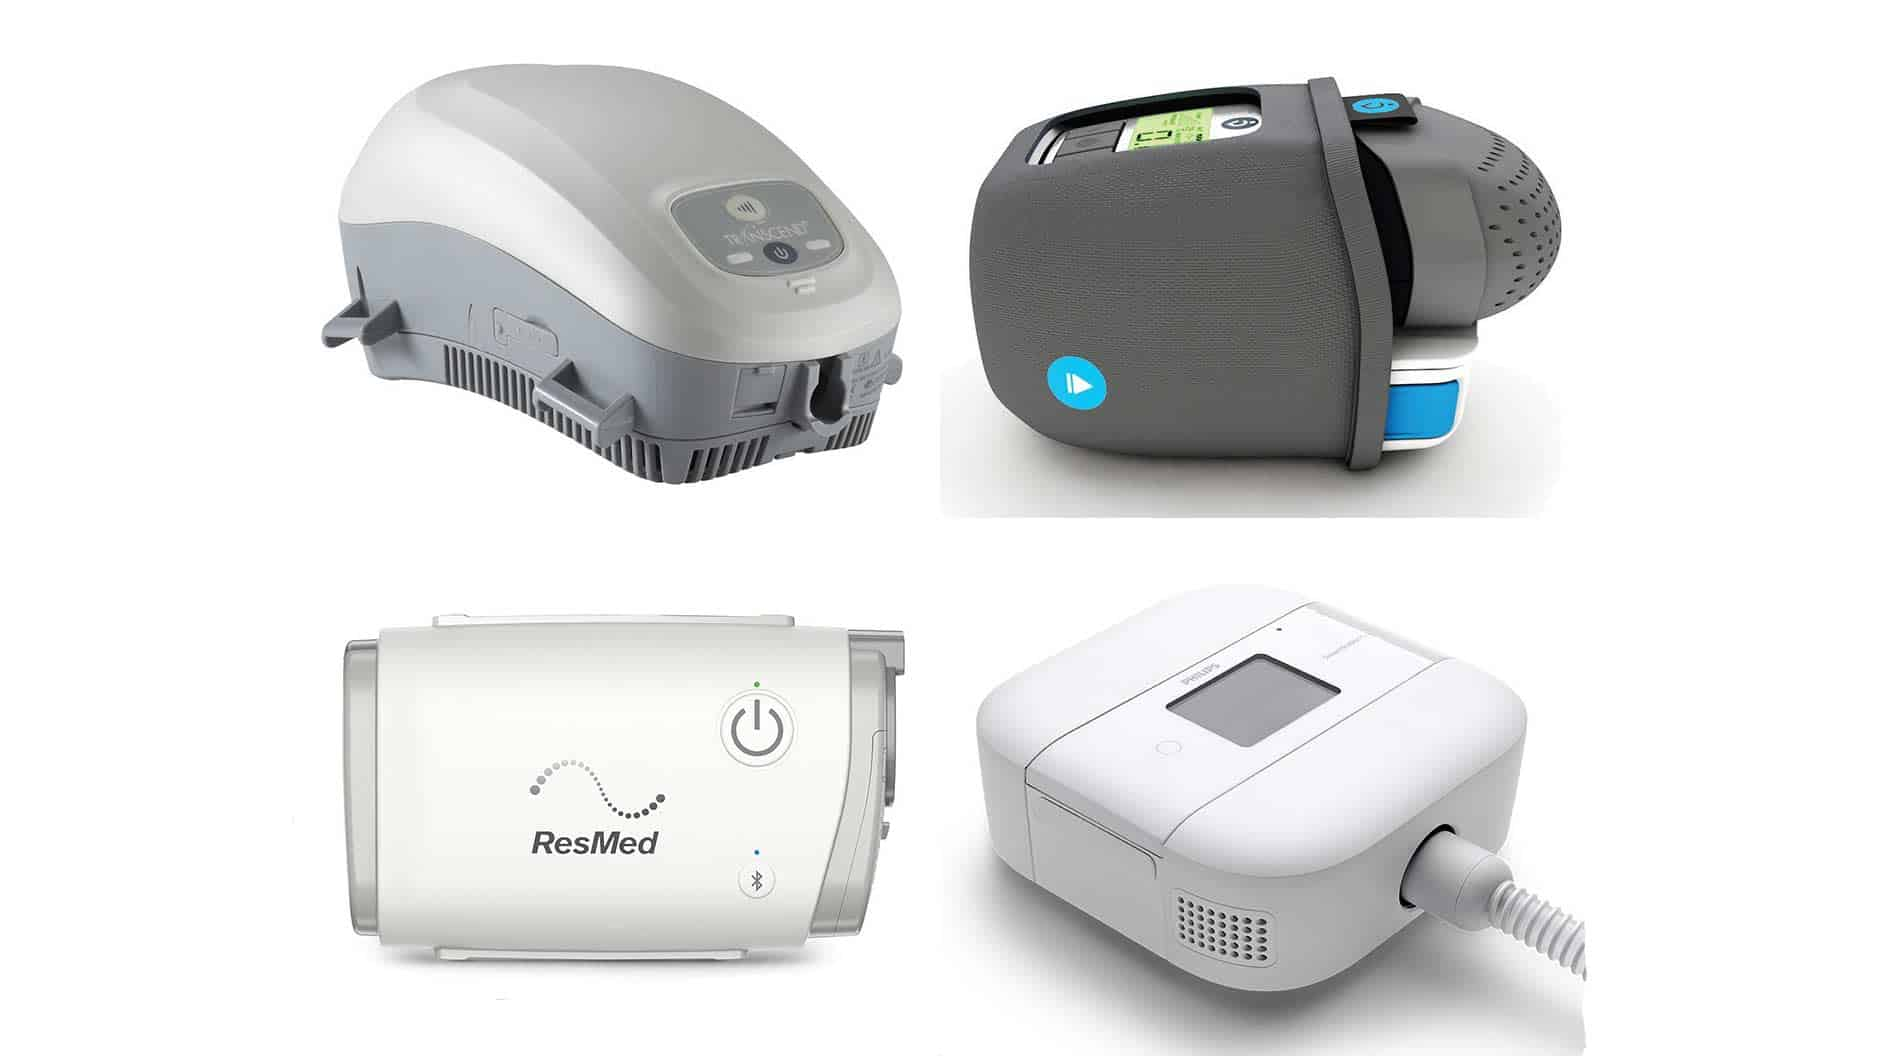 Best Travel CPAP Machines of 2018! The Top 4 Portable CPAPs